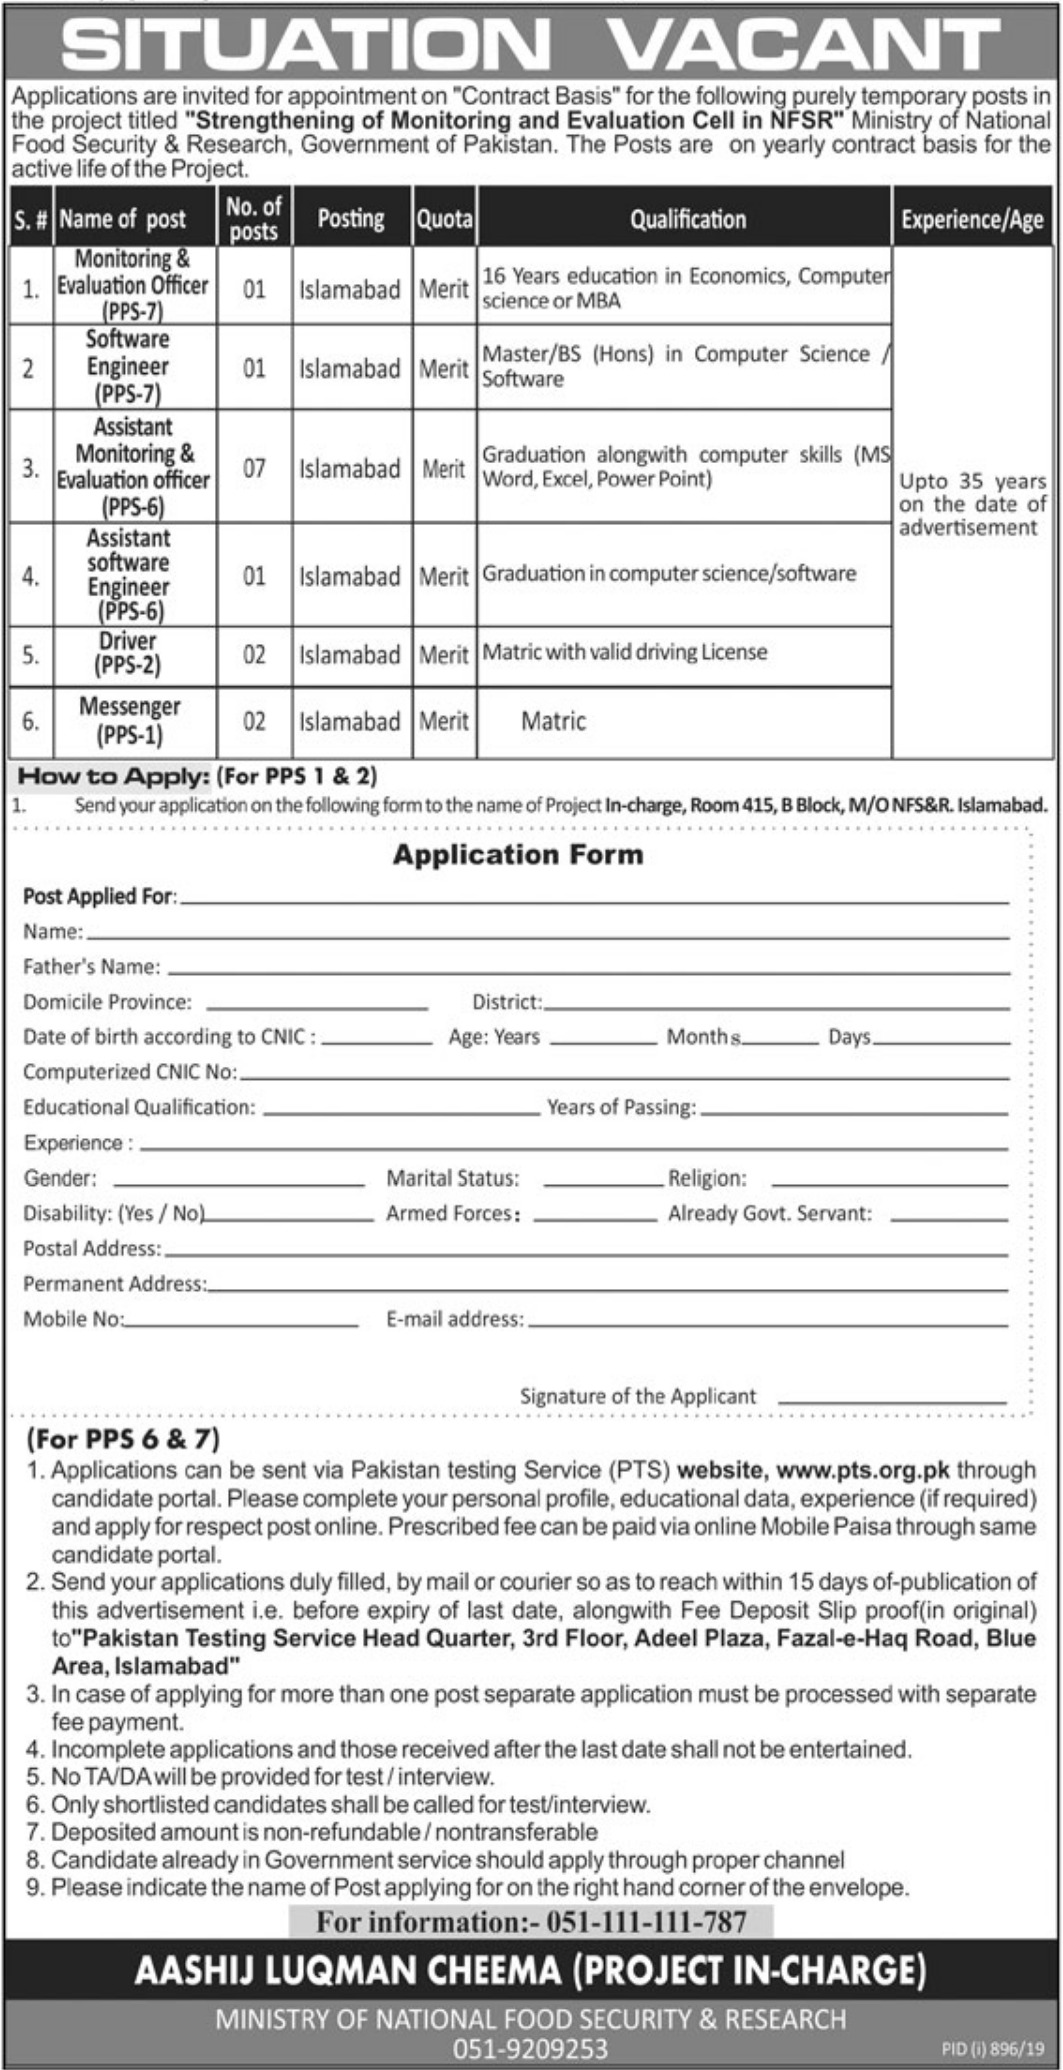 Ministry of National Food Security & Research Jobs 2019 Apply Online via PTS